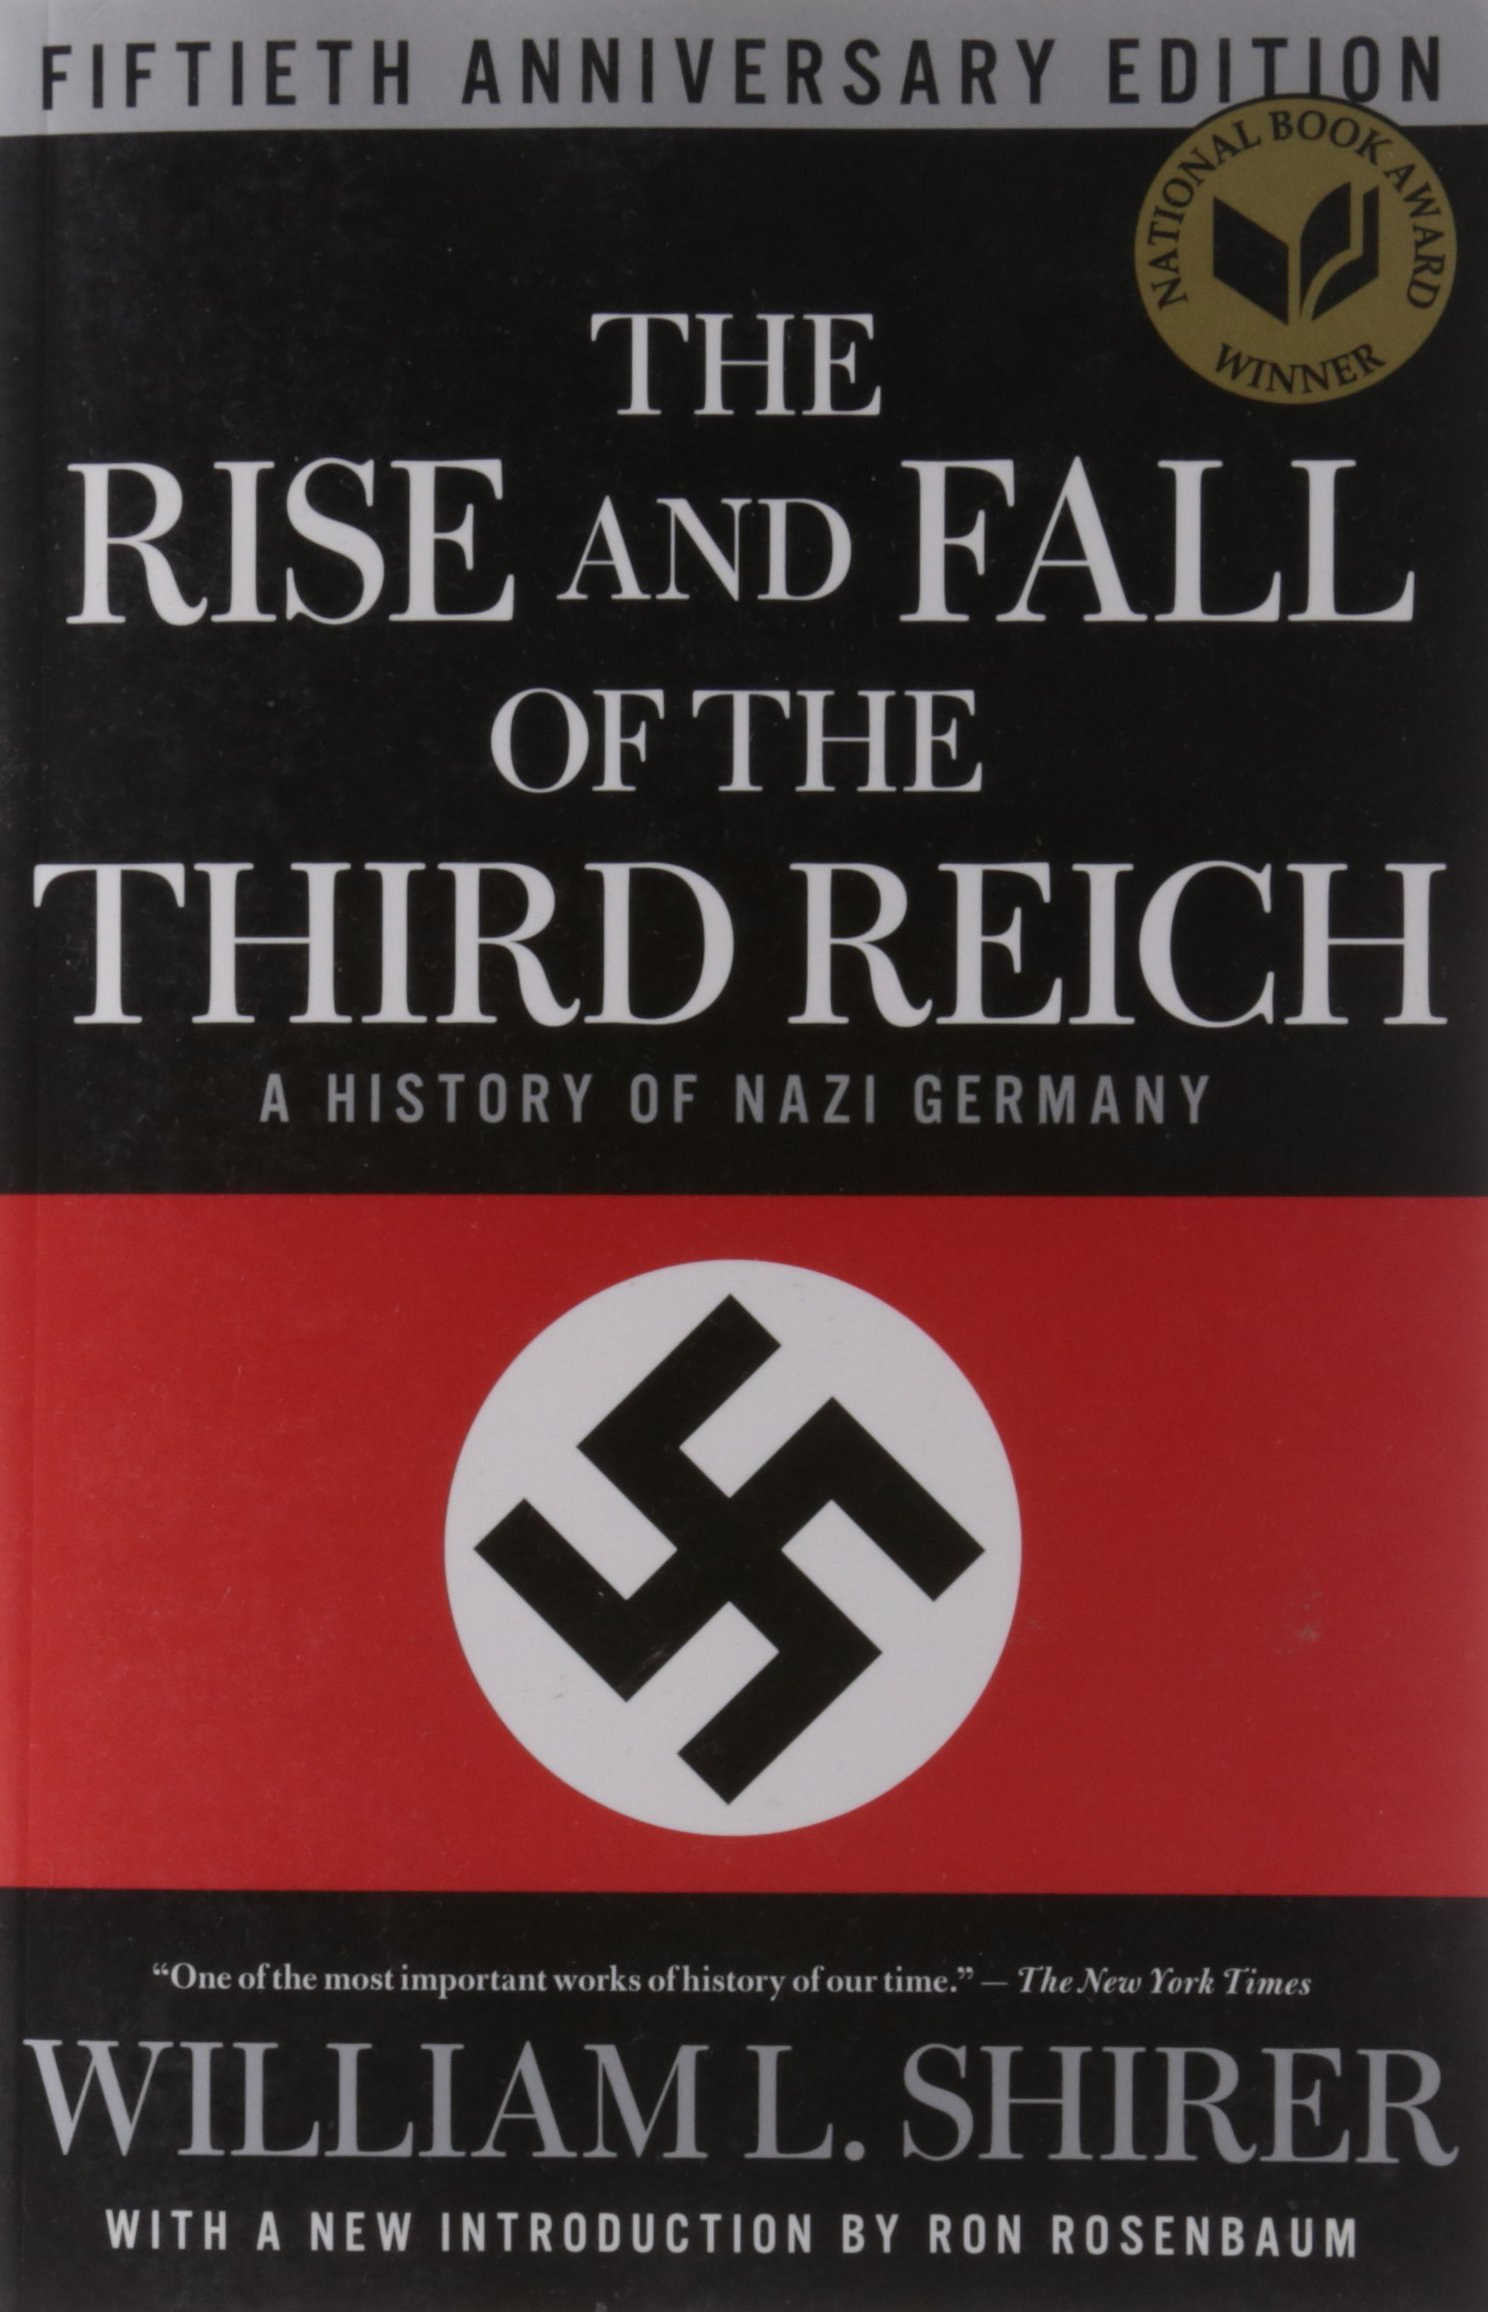 Image result for rise and fall of third reich